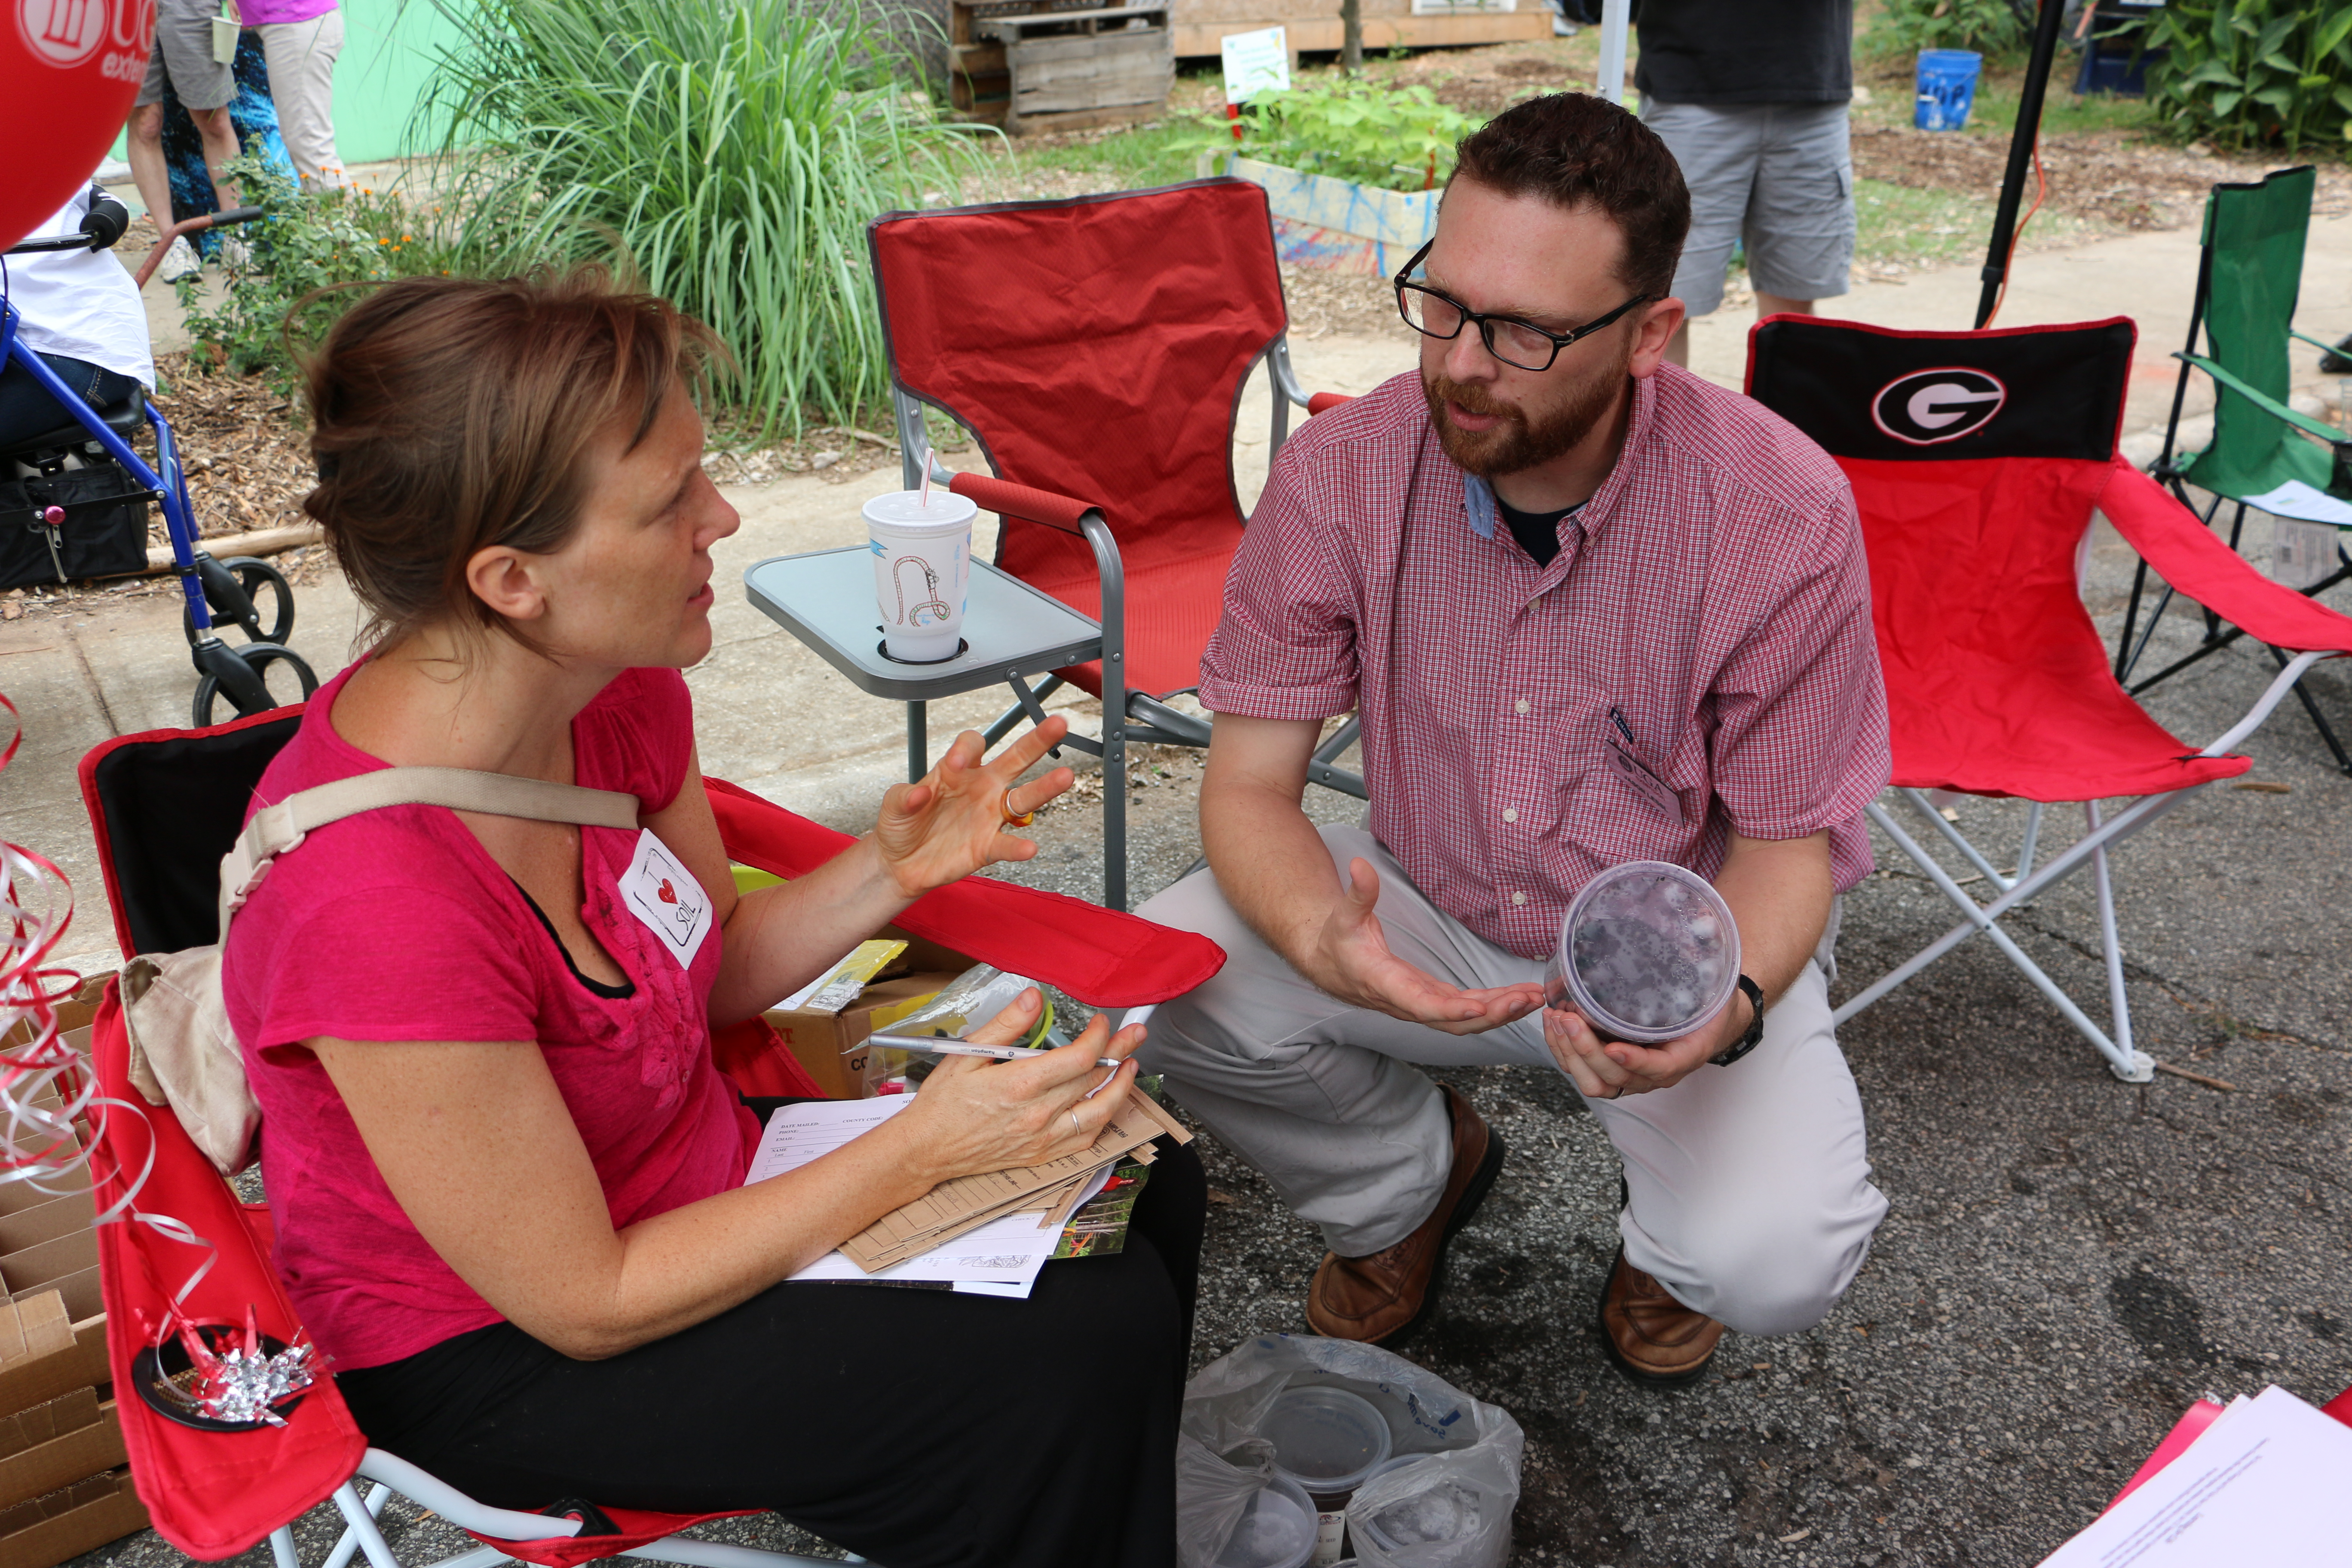 Representatives of UGA's Soil, Plant and Water Analysis Laboratory will be on hand to answer gardeners' soil questions in downtown Atlanta on Aug. 27 at Love Local: A Soil Festival to Grow Healthier Communities.